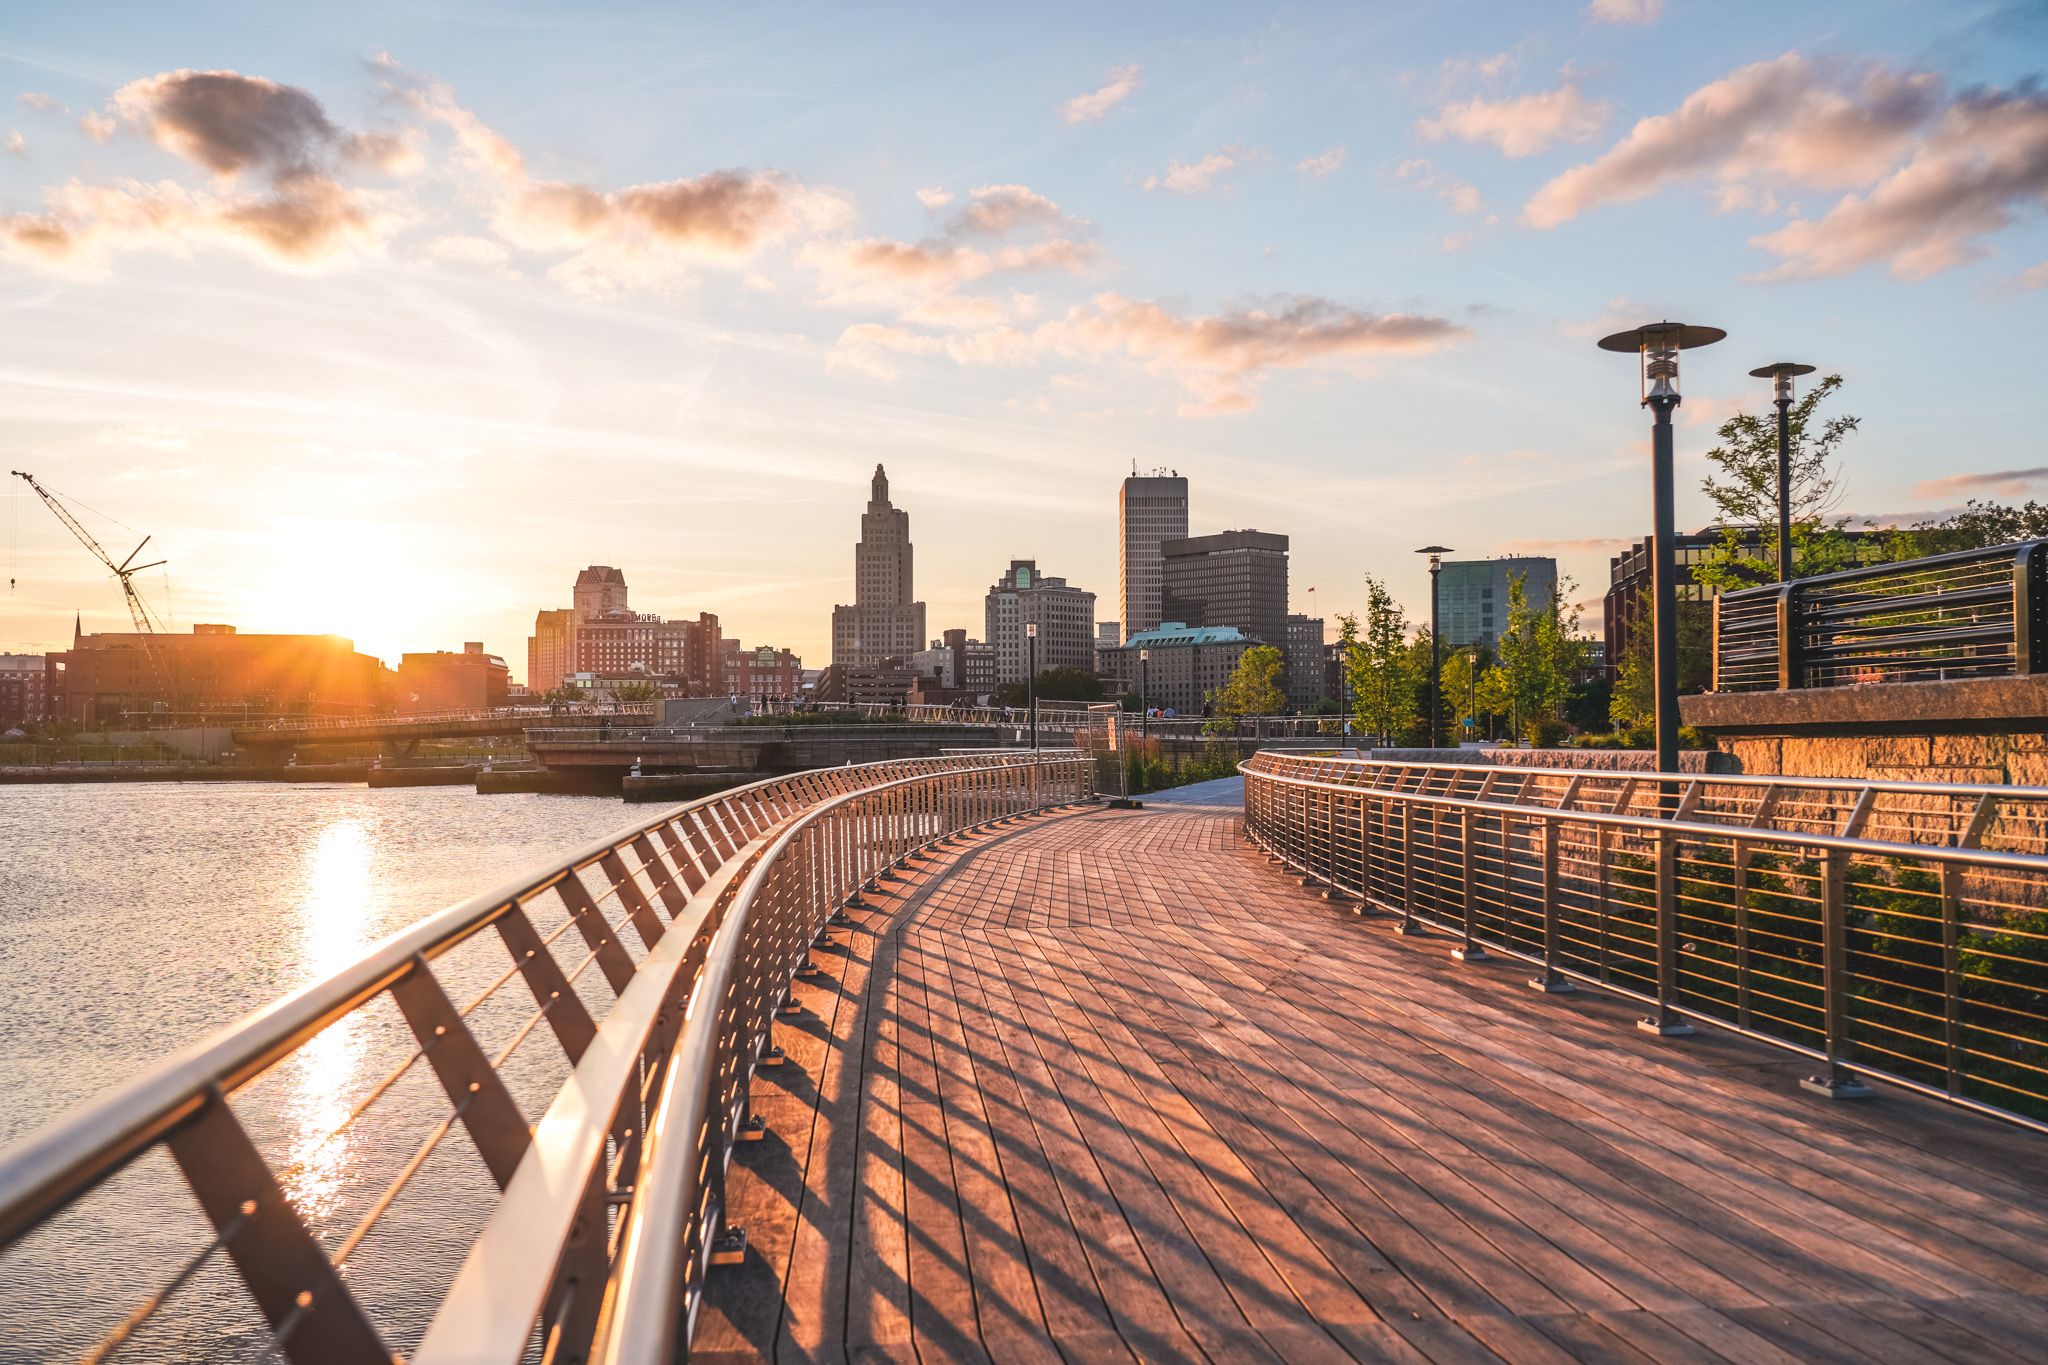 City of Providence header image